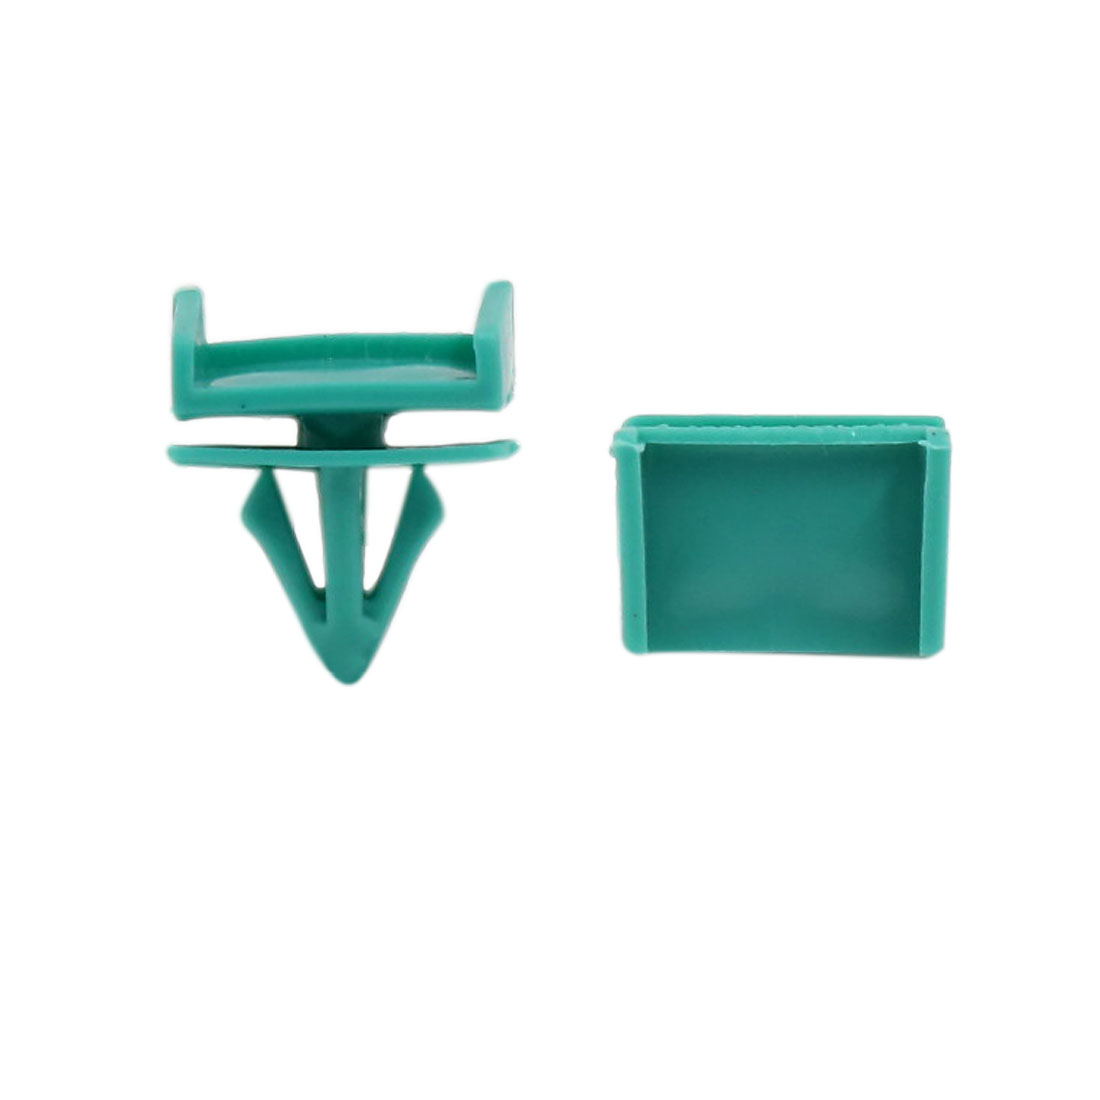 500pcs 12mm Door Plastic Rivet Engine Lining Trim Panel Clips Green for Buick